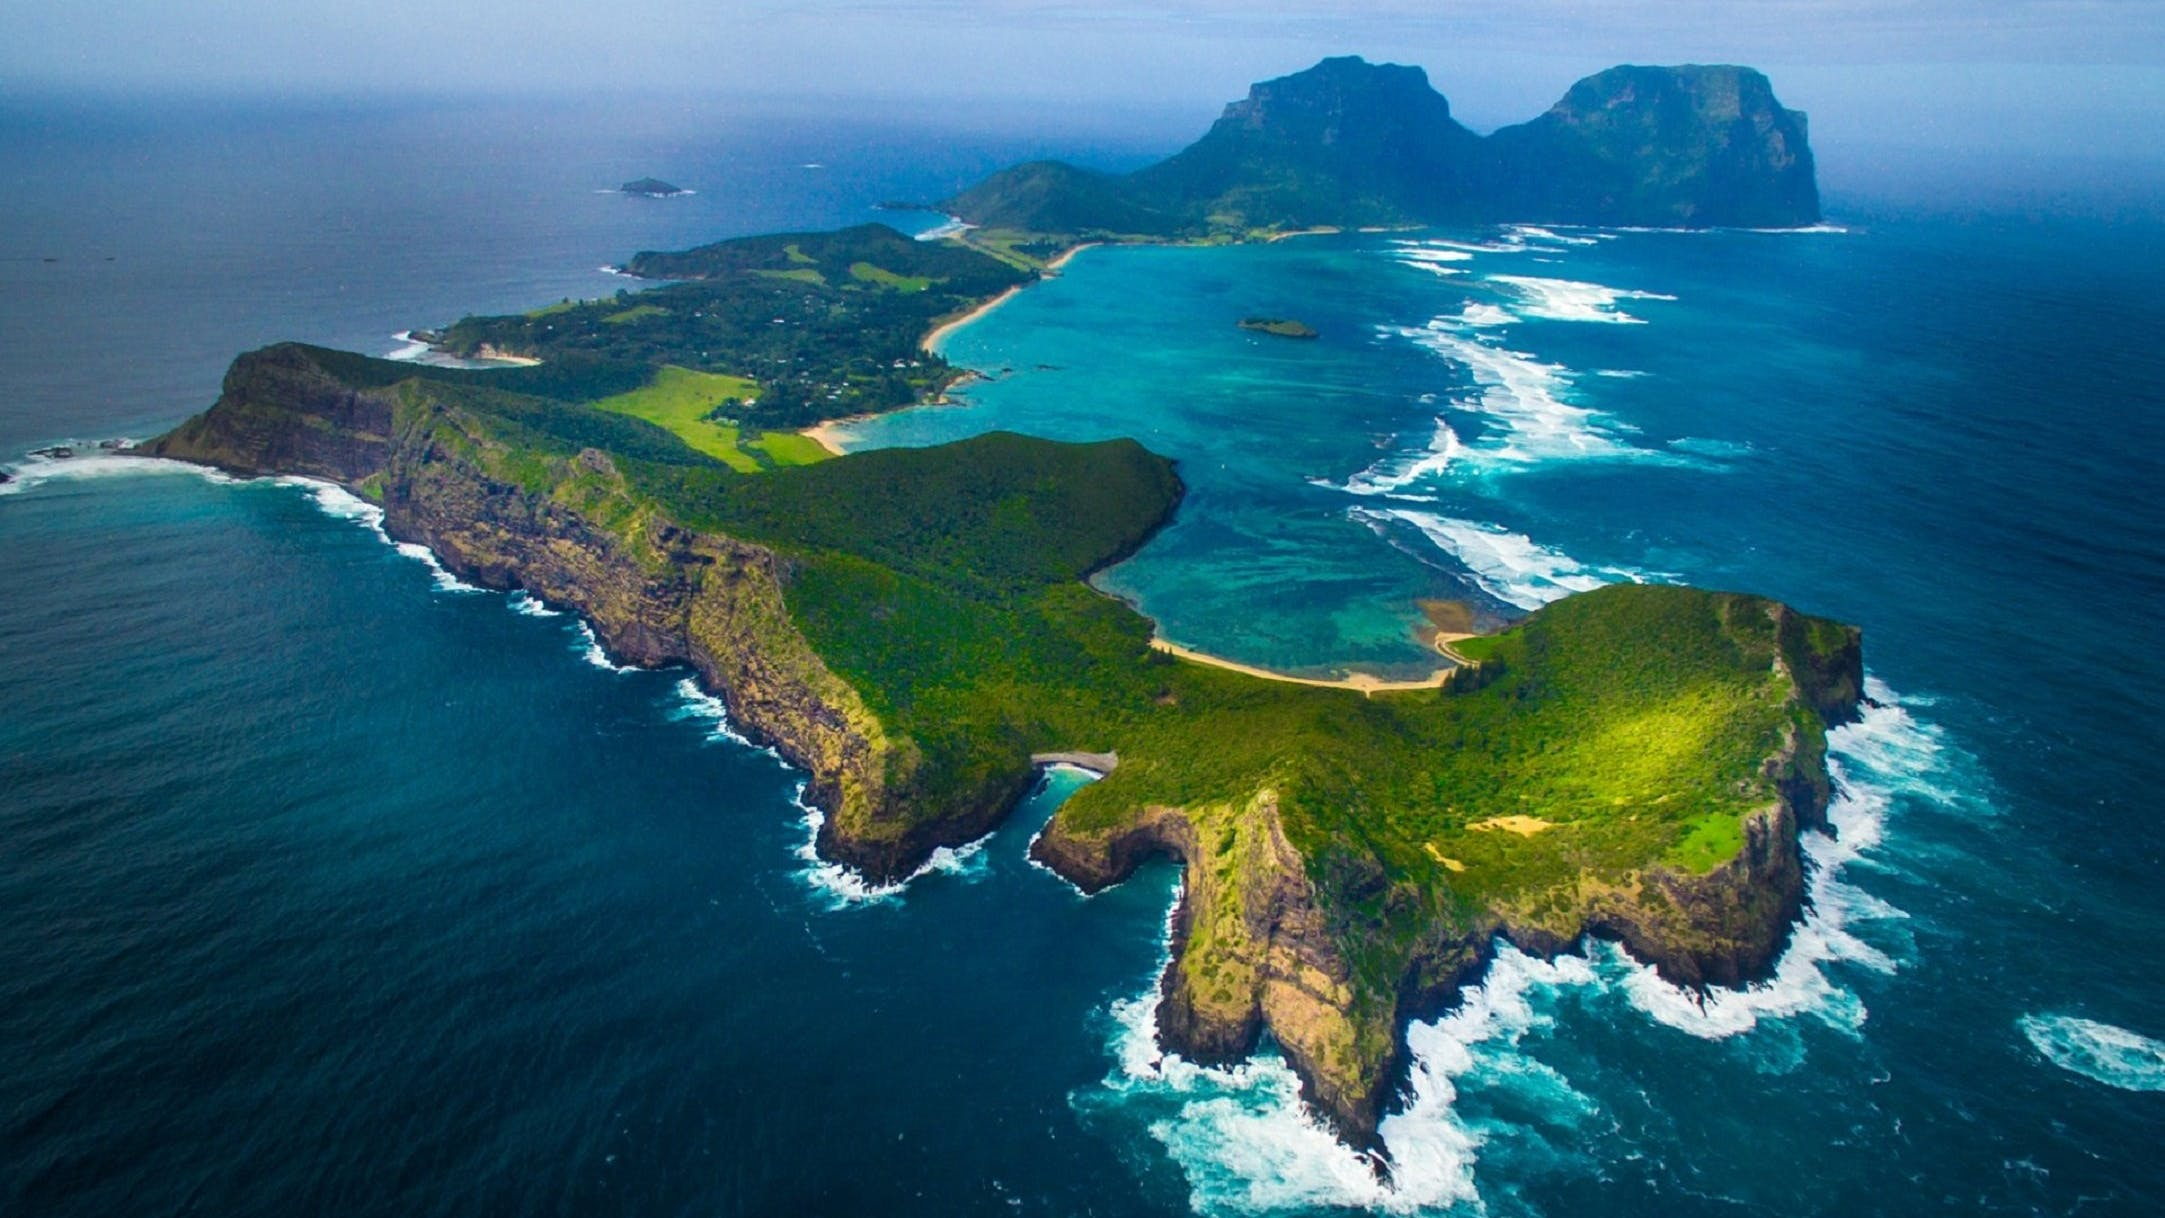 Port Macquarie: The Gateway To Lord Howe Island